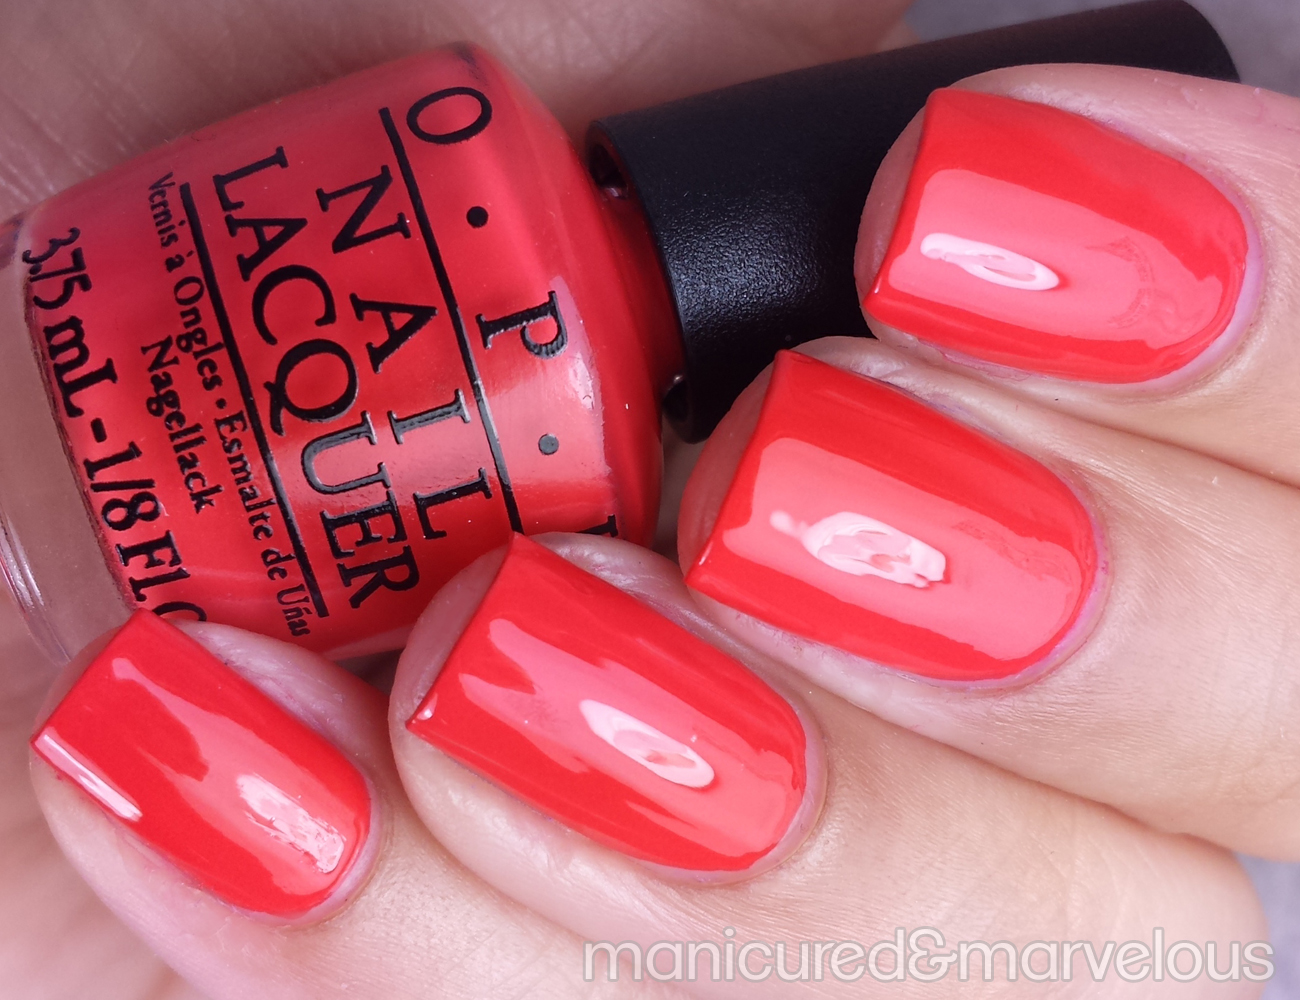 opi spring 2015 hawaii mini collection swatches review manicured